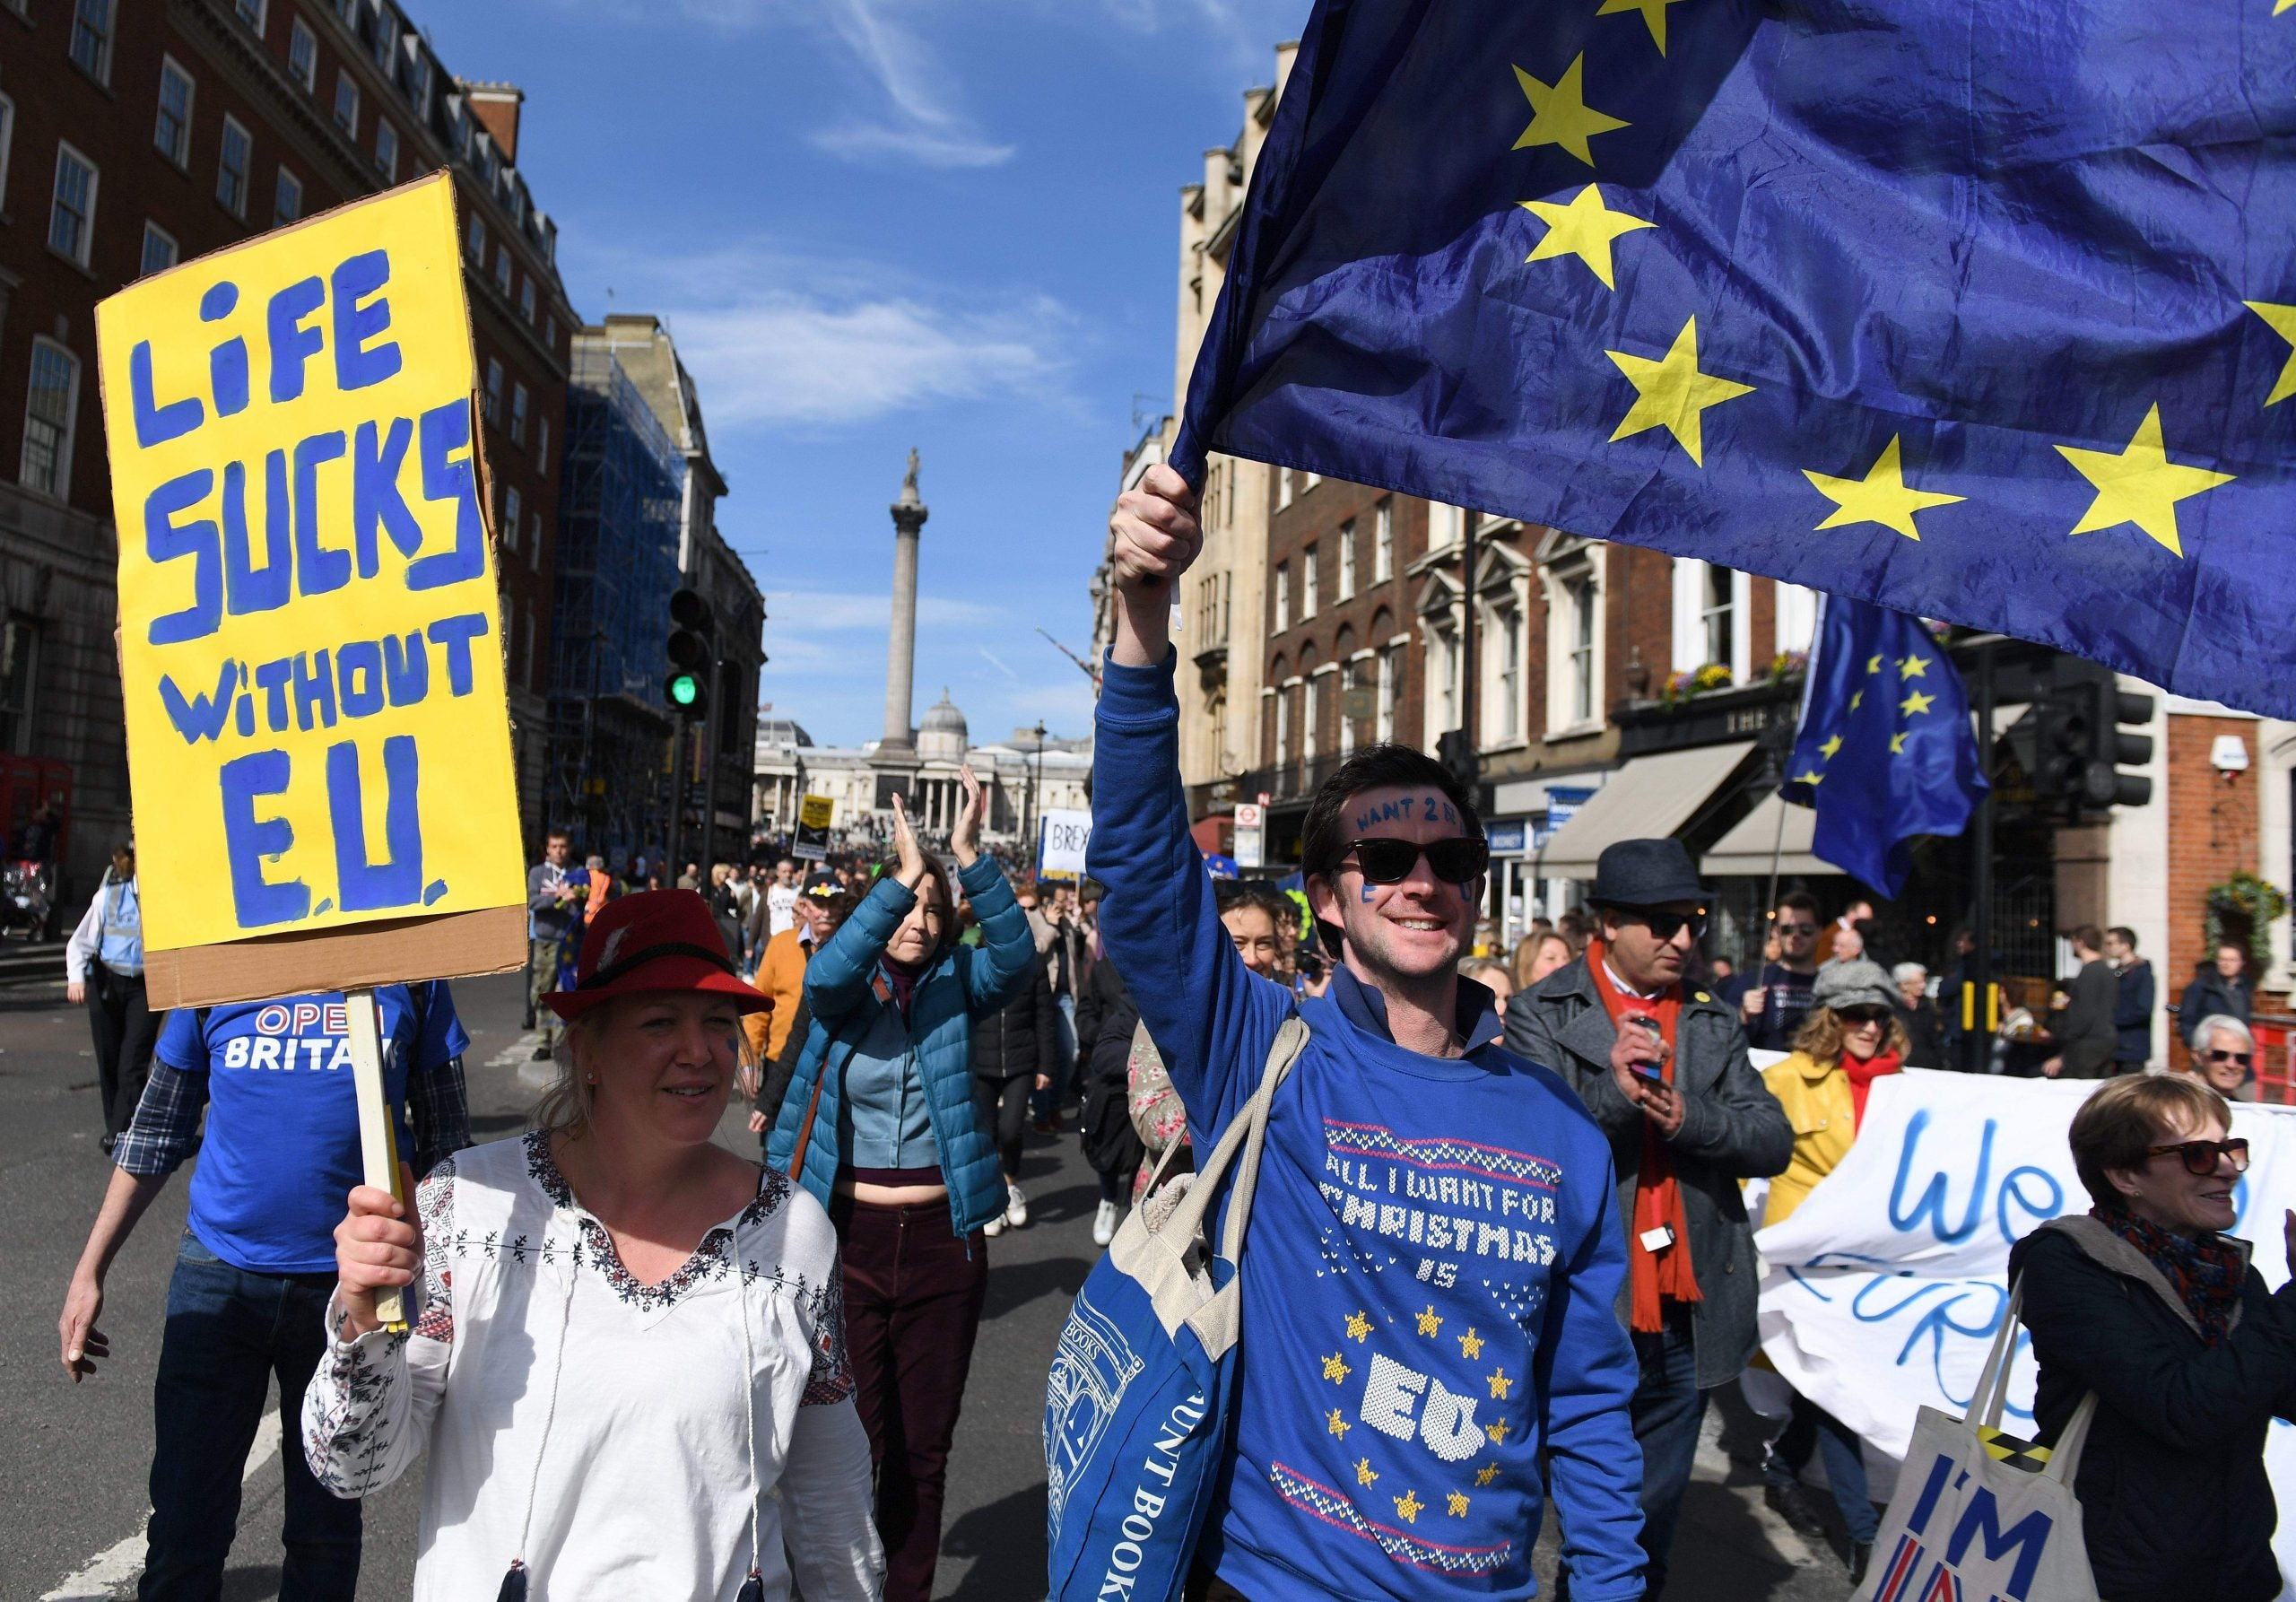 Brexit is happening - so channel your rage into progressive action